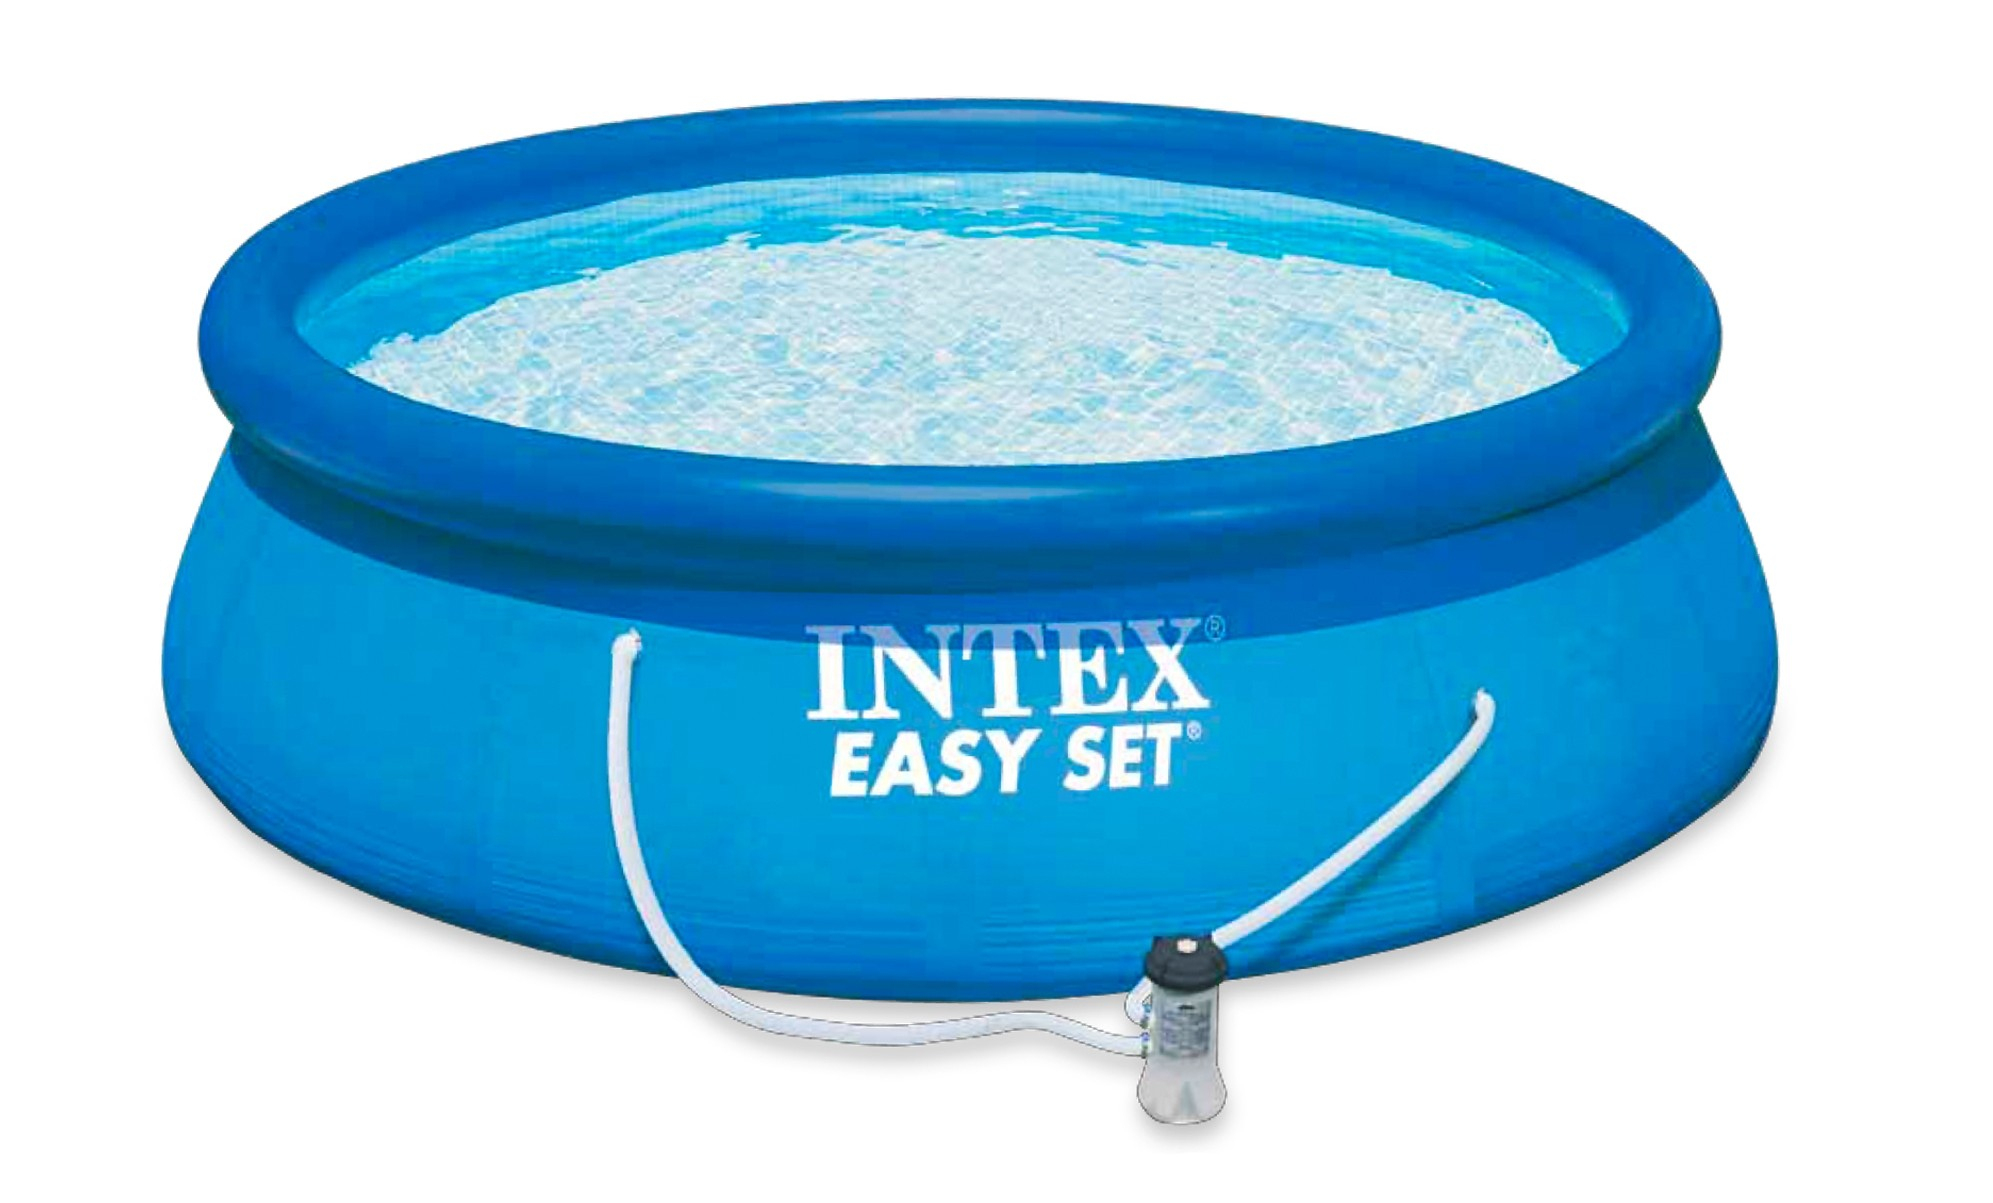 Piscina Easy Set Intex 366X91Cm 56932/28146 concernant Piscine Intex 3.66